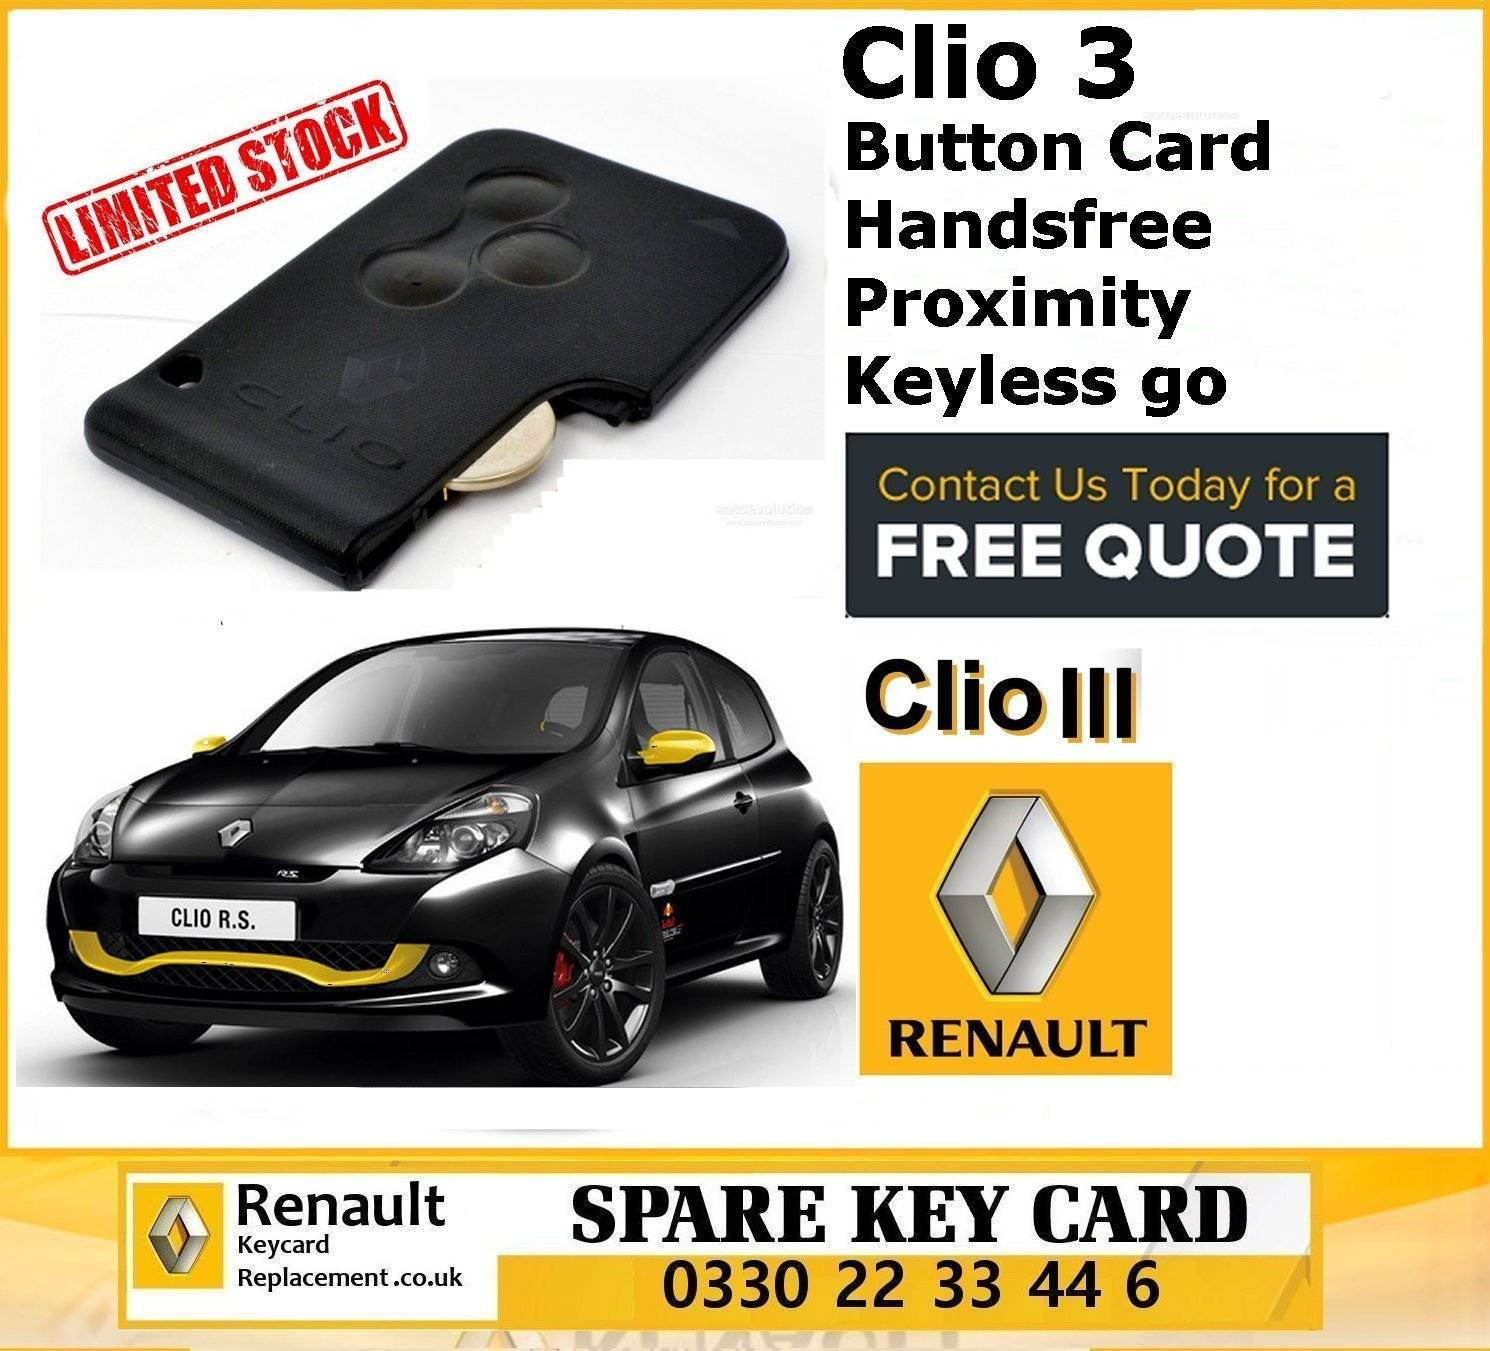 Renault Clio programming repair services manchester replacement keycards